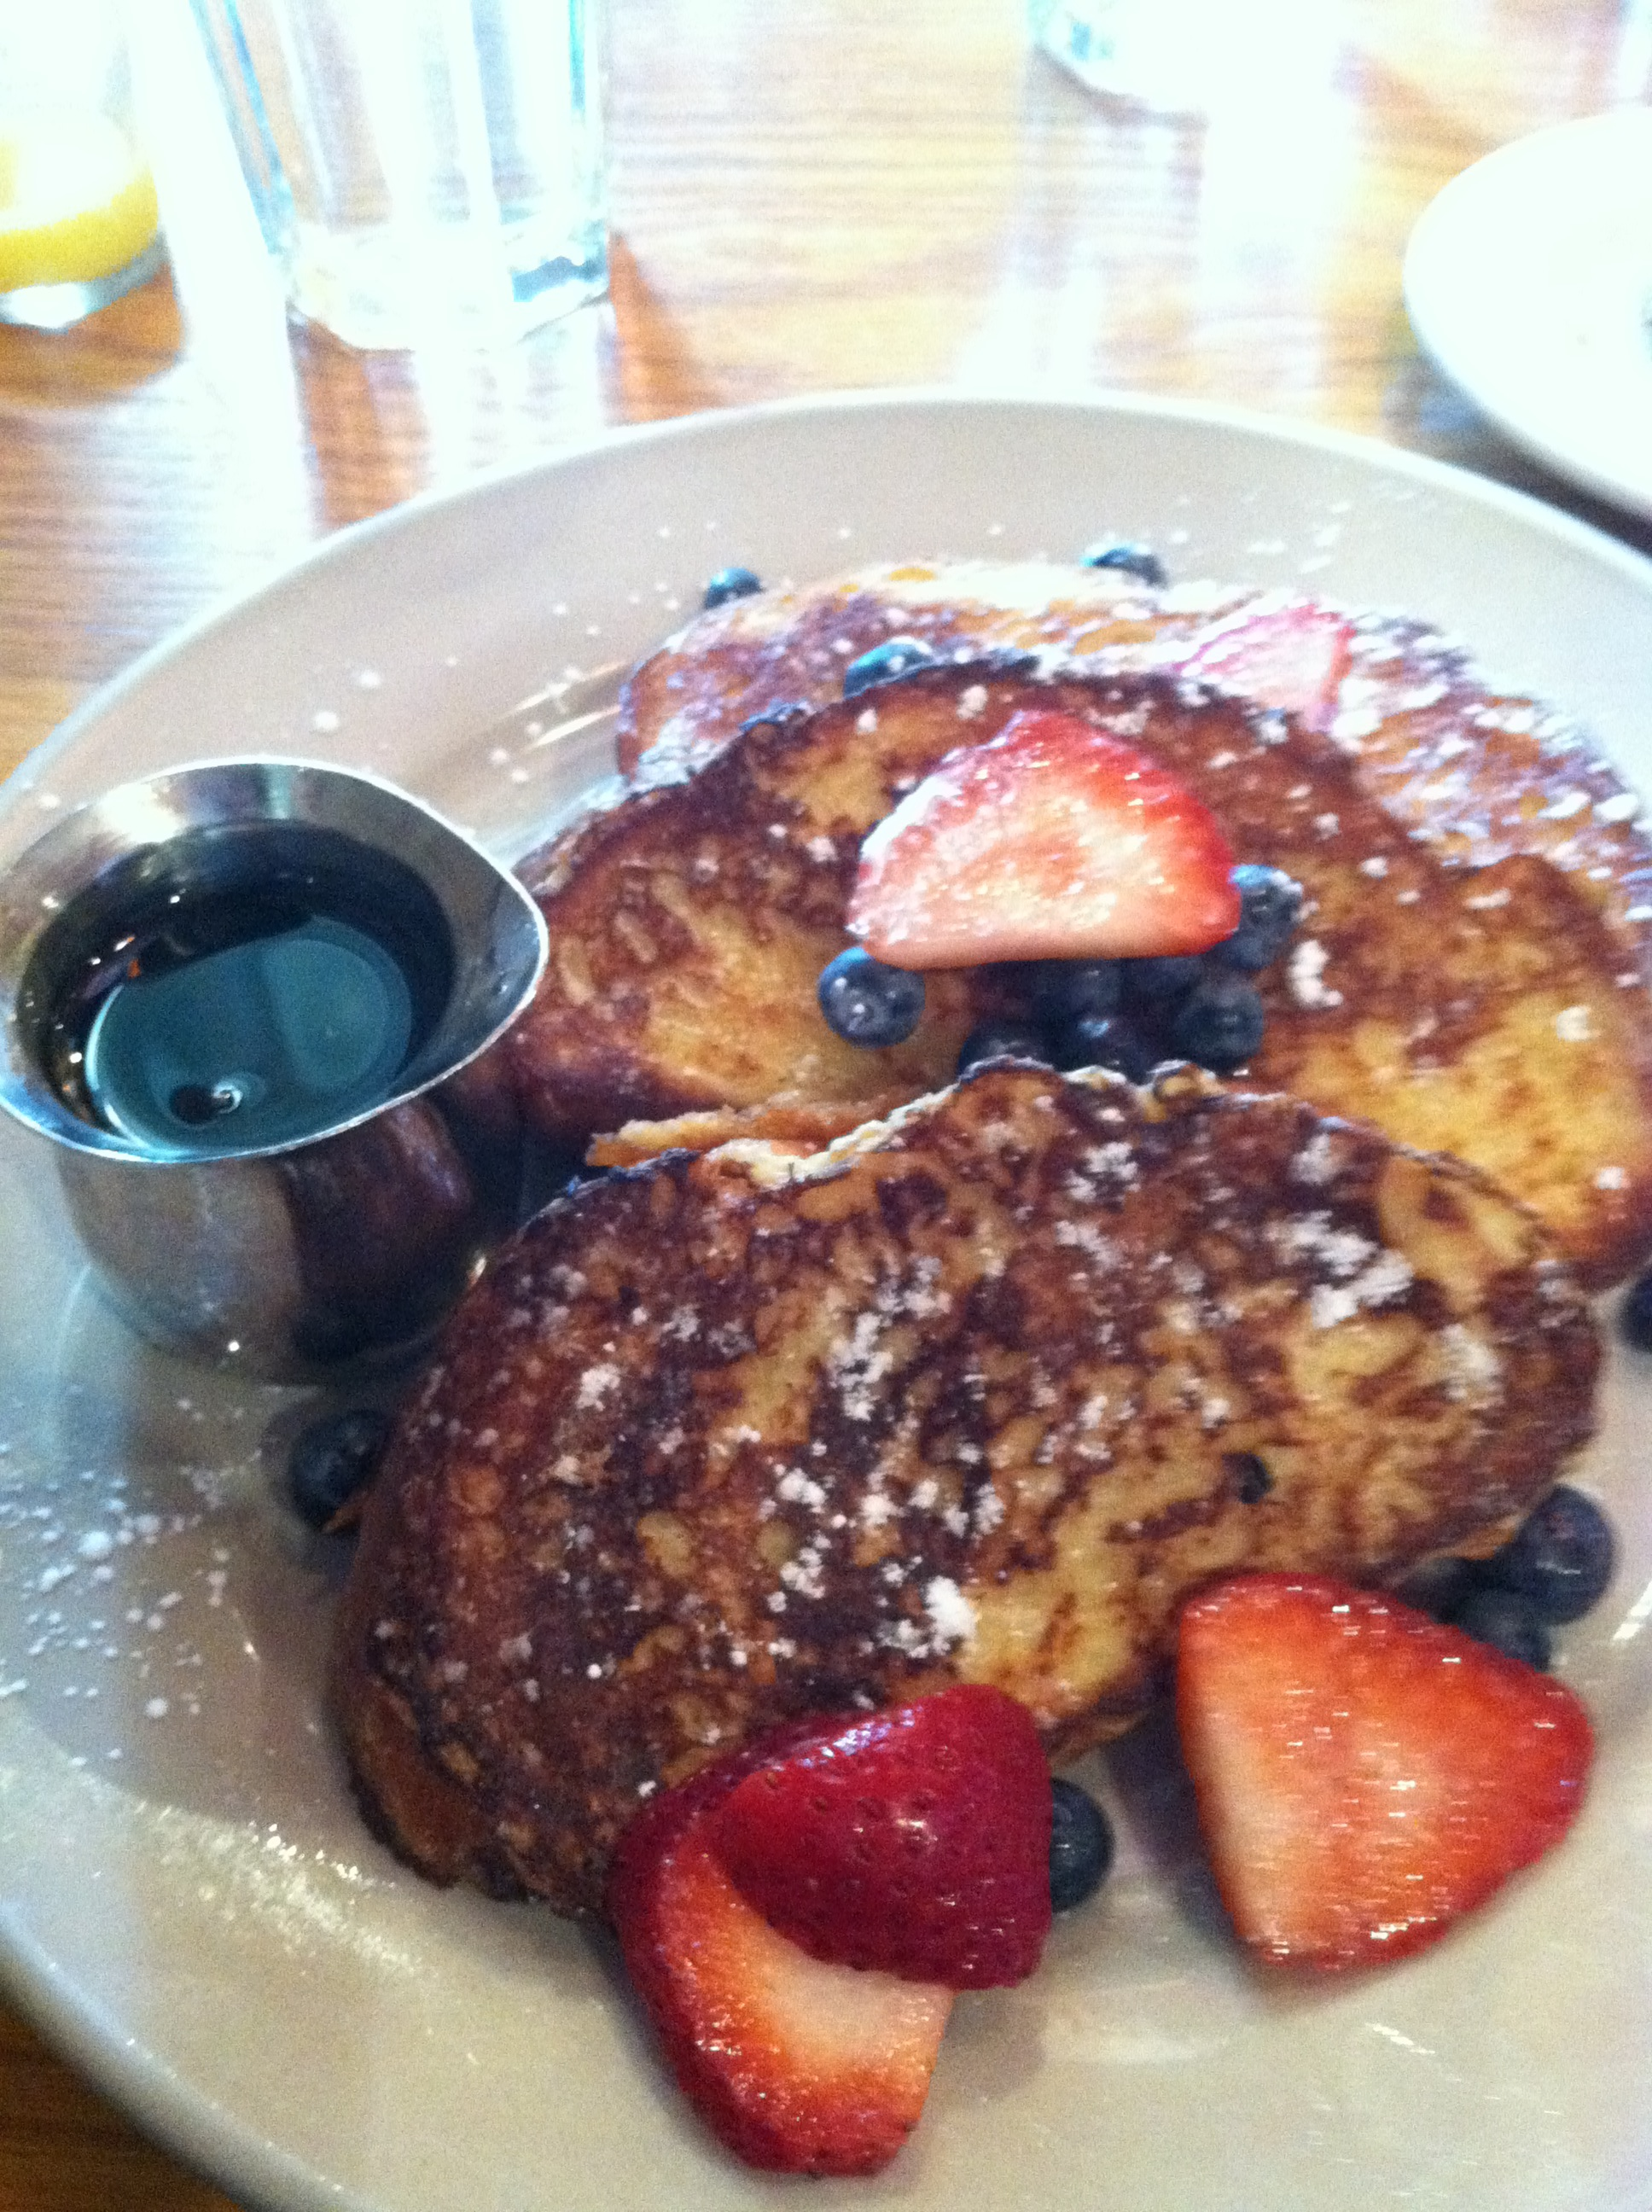 Irregardless Cafe's Challah French Toast. Yum.